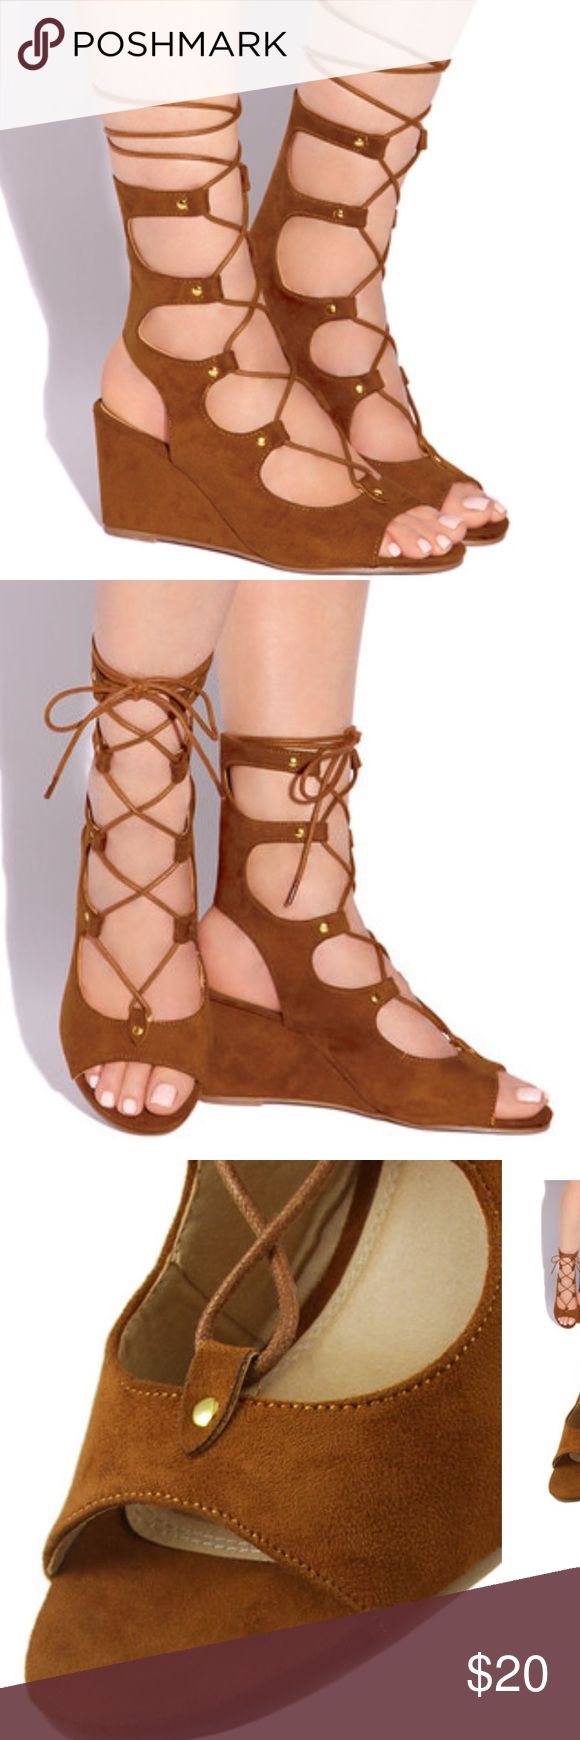 Lola Shoetique lace up wedge sandal Lola Shoetique Sweetest Kiss wedge sandal in cognac. These lace up shoes which can be tied up towards your leg. I have never worn them. Lola Shoetique Shoes Wedges